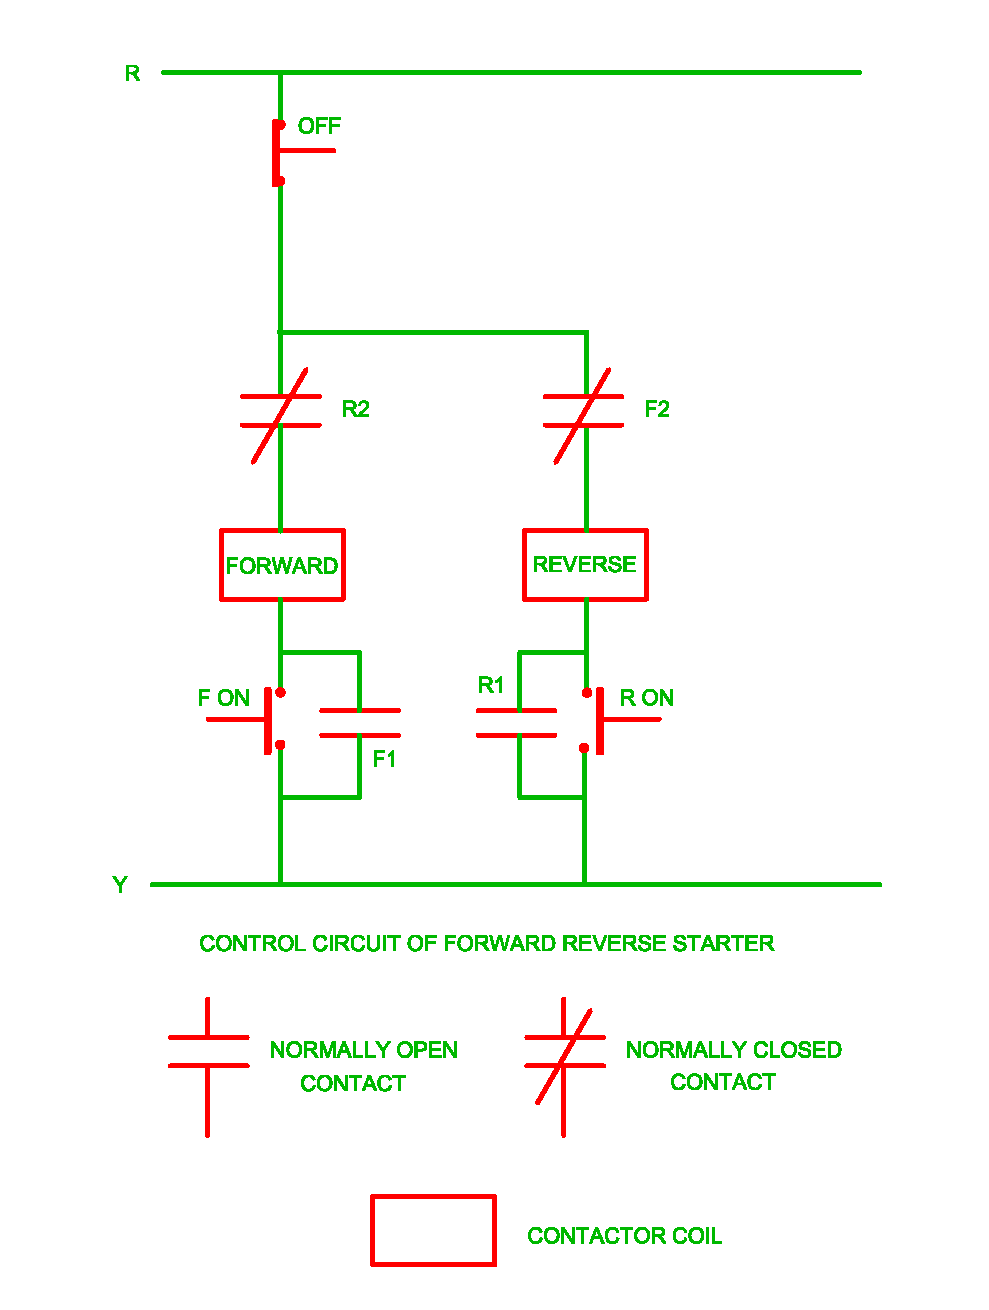 Wiring Diagram Reversing Circuit Palisade Cell Plant Control Of Forward Reverse Starter Electrical Revolution